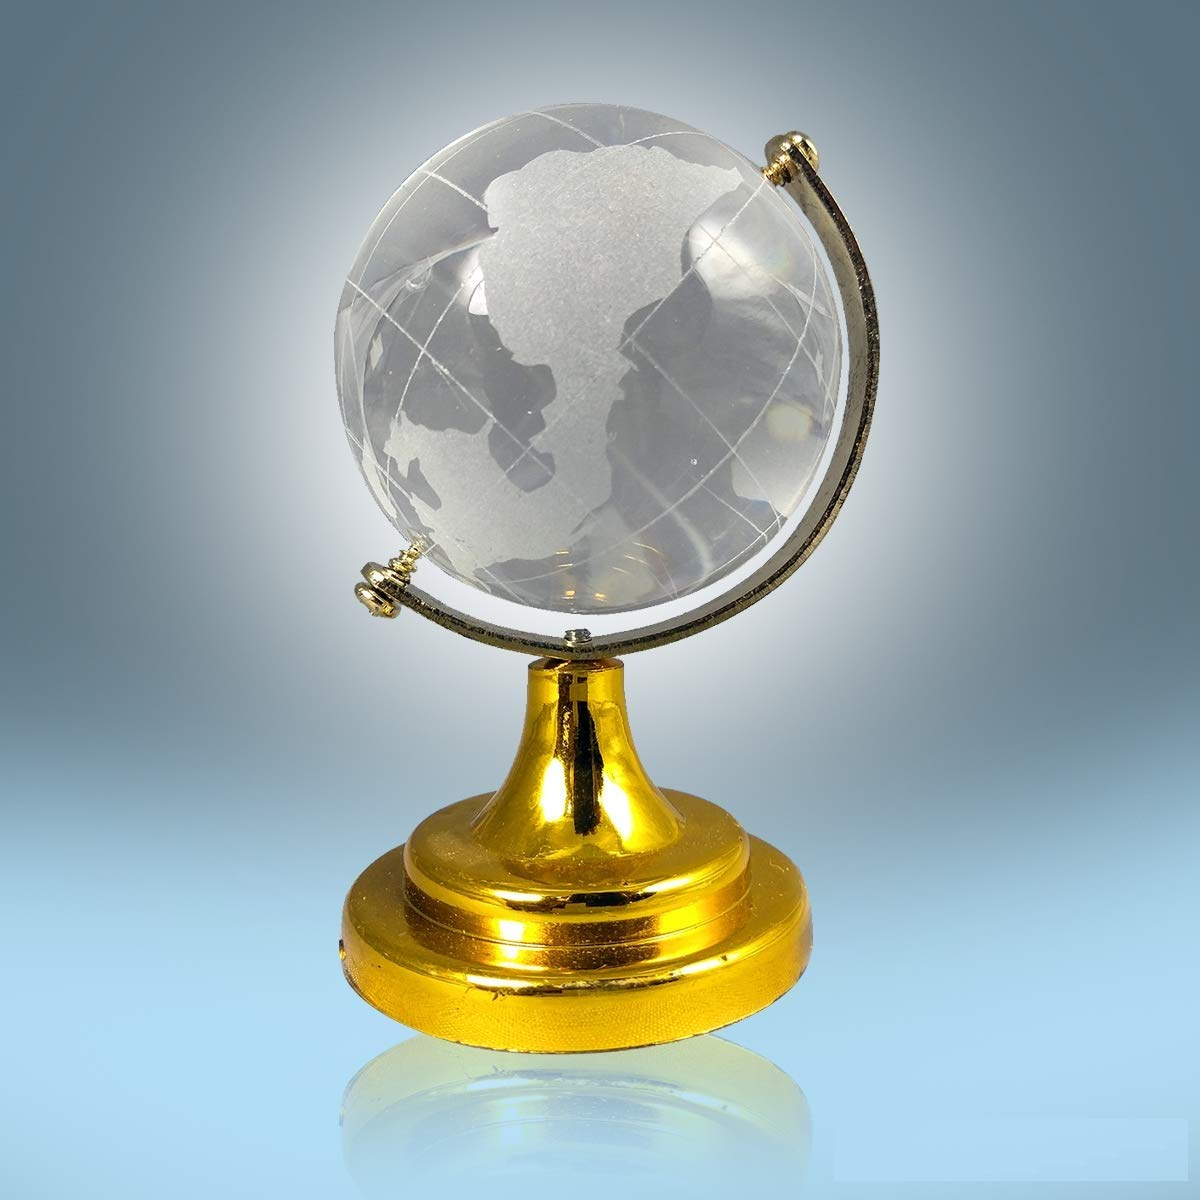 Buy Ankita Gemstones Vastu/Feng Shui Crystal Globe for Success Good Luck  and Prosperity Online at Low Prices in India - Amazon.in